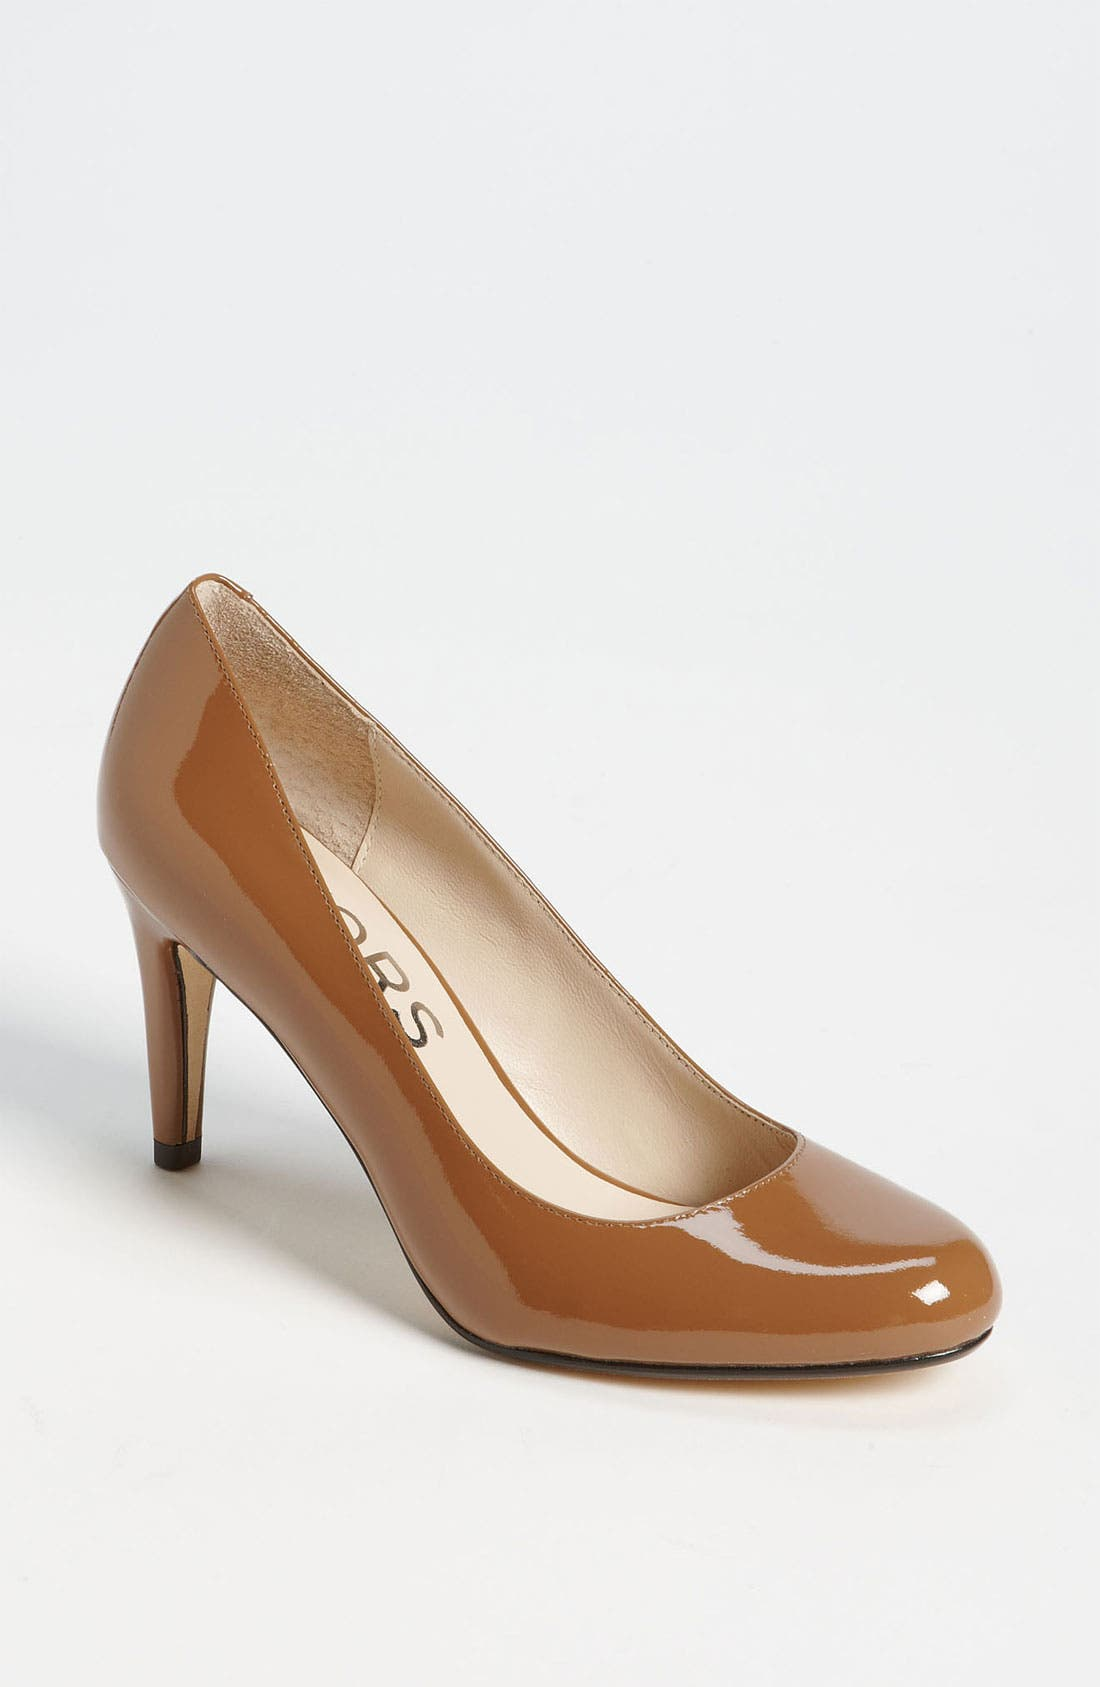 Alternate Image 1 Selected - KORS Michael Kors 'Ghita' Pump